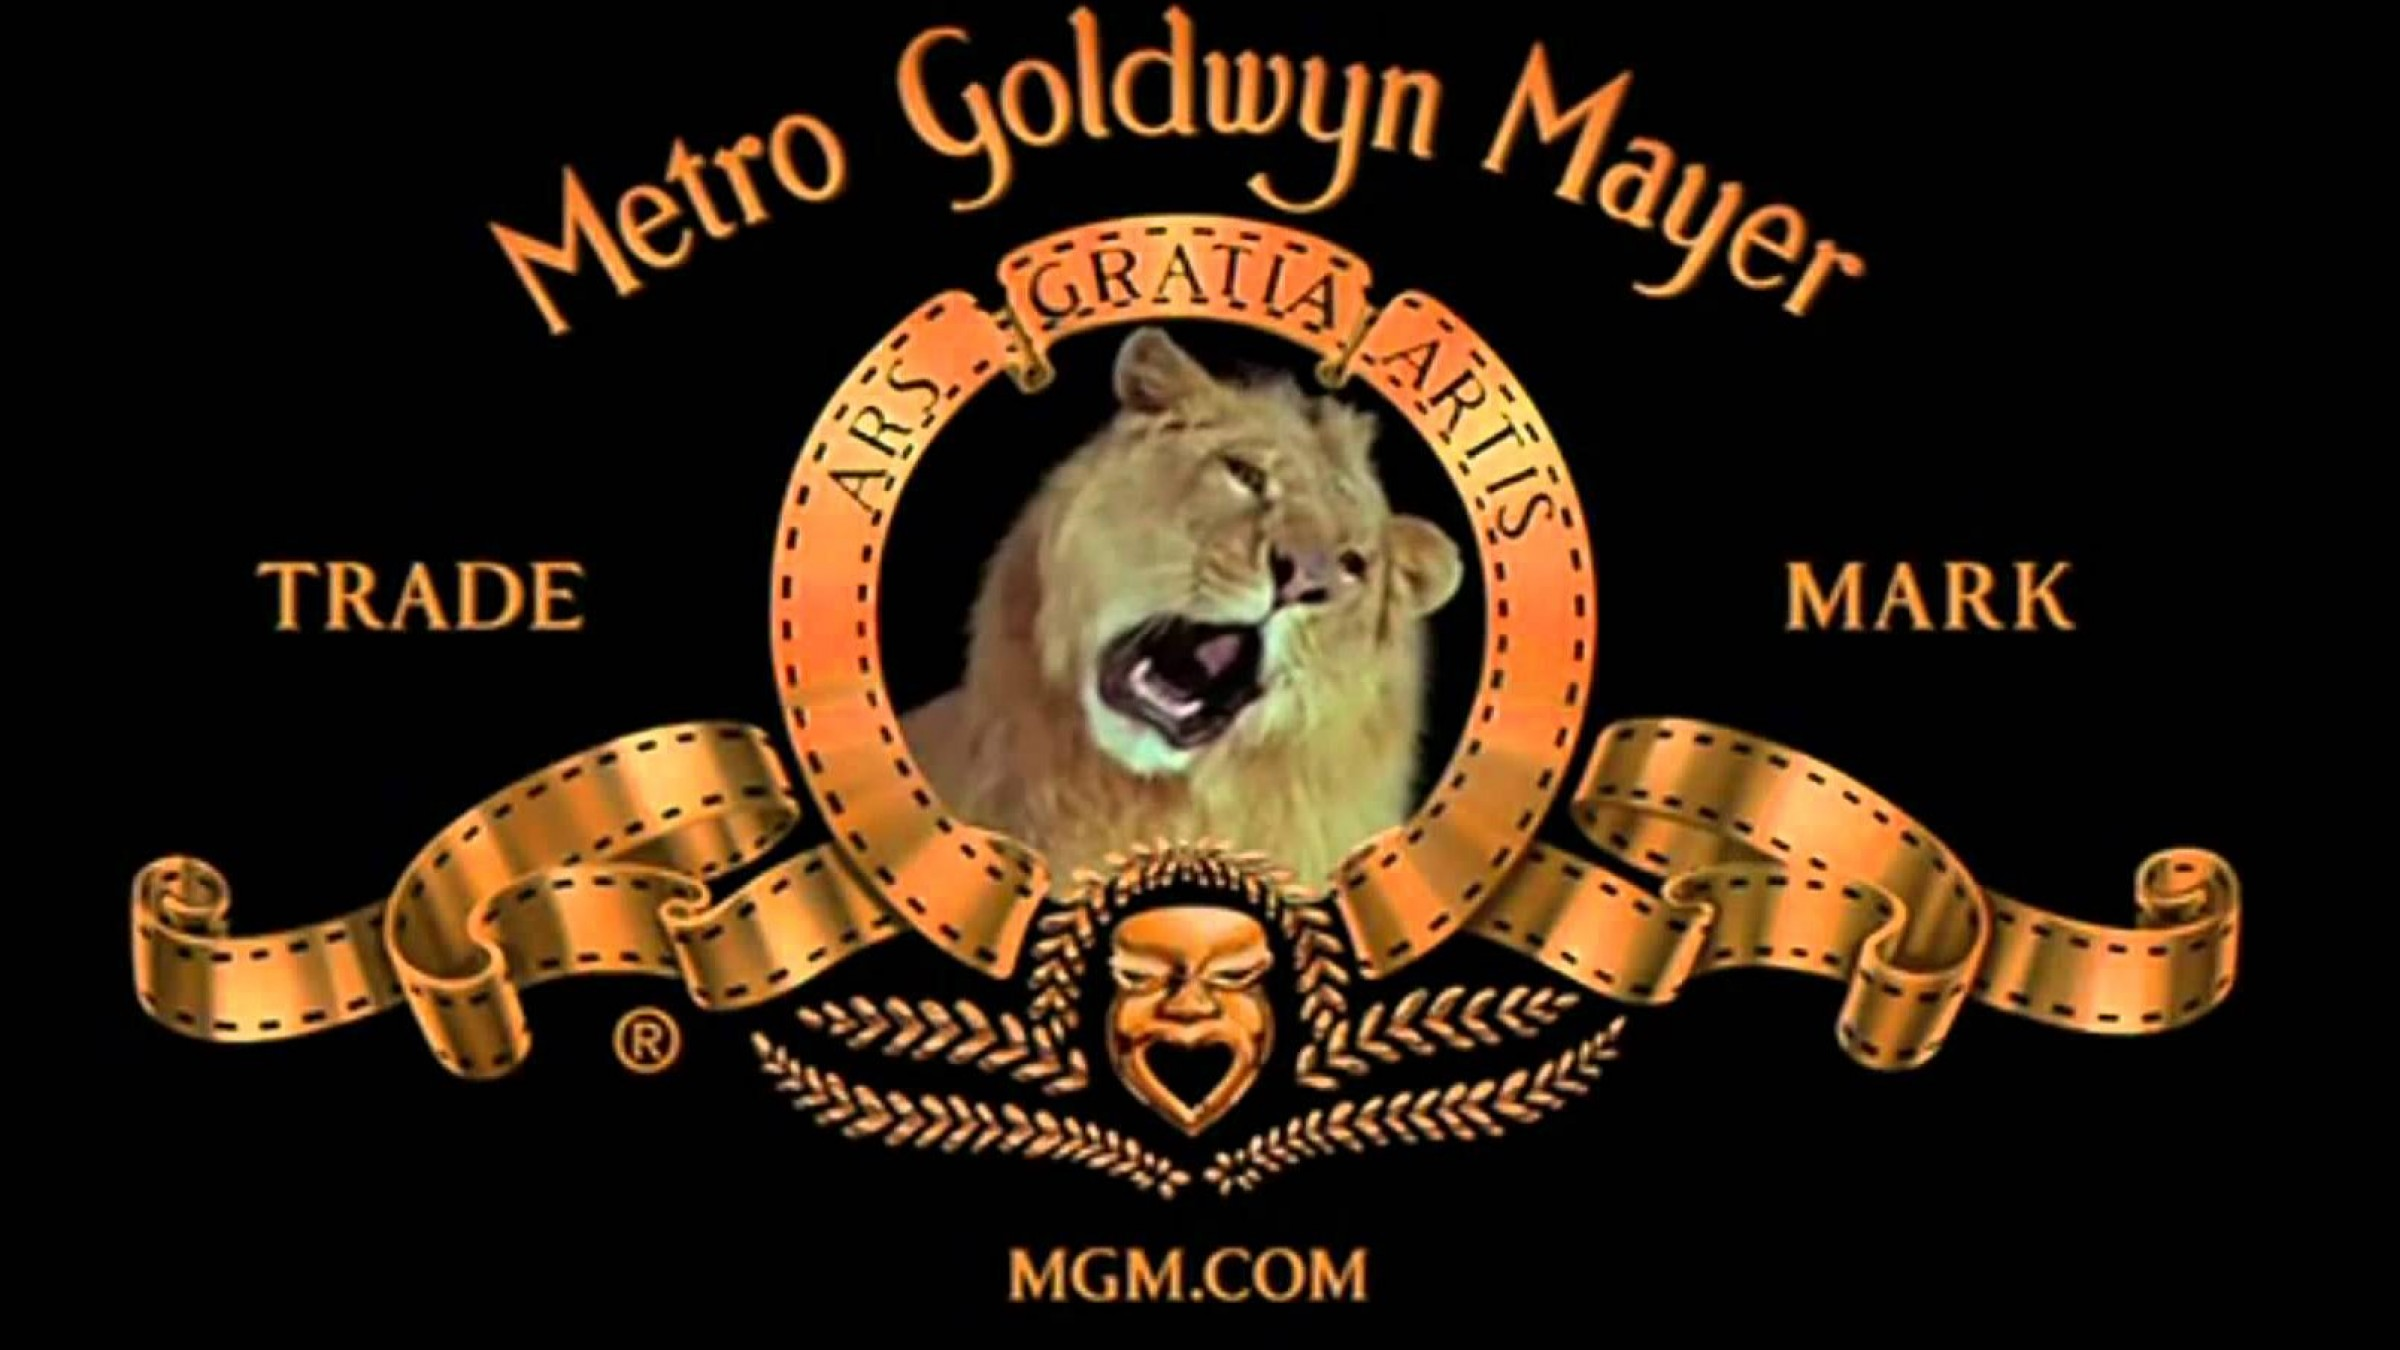 Got a Couple Billion Dollars? You Can Buy MGM!